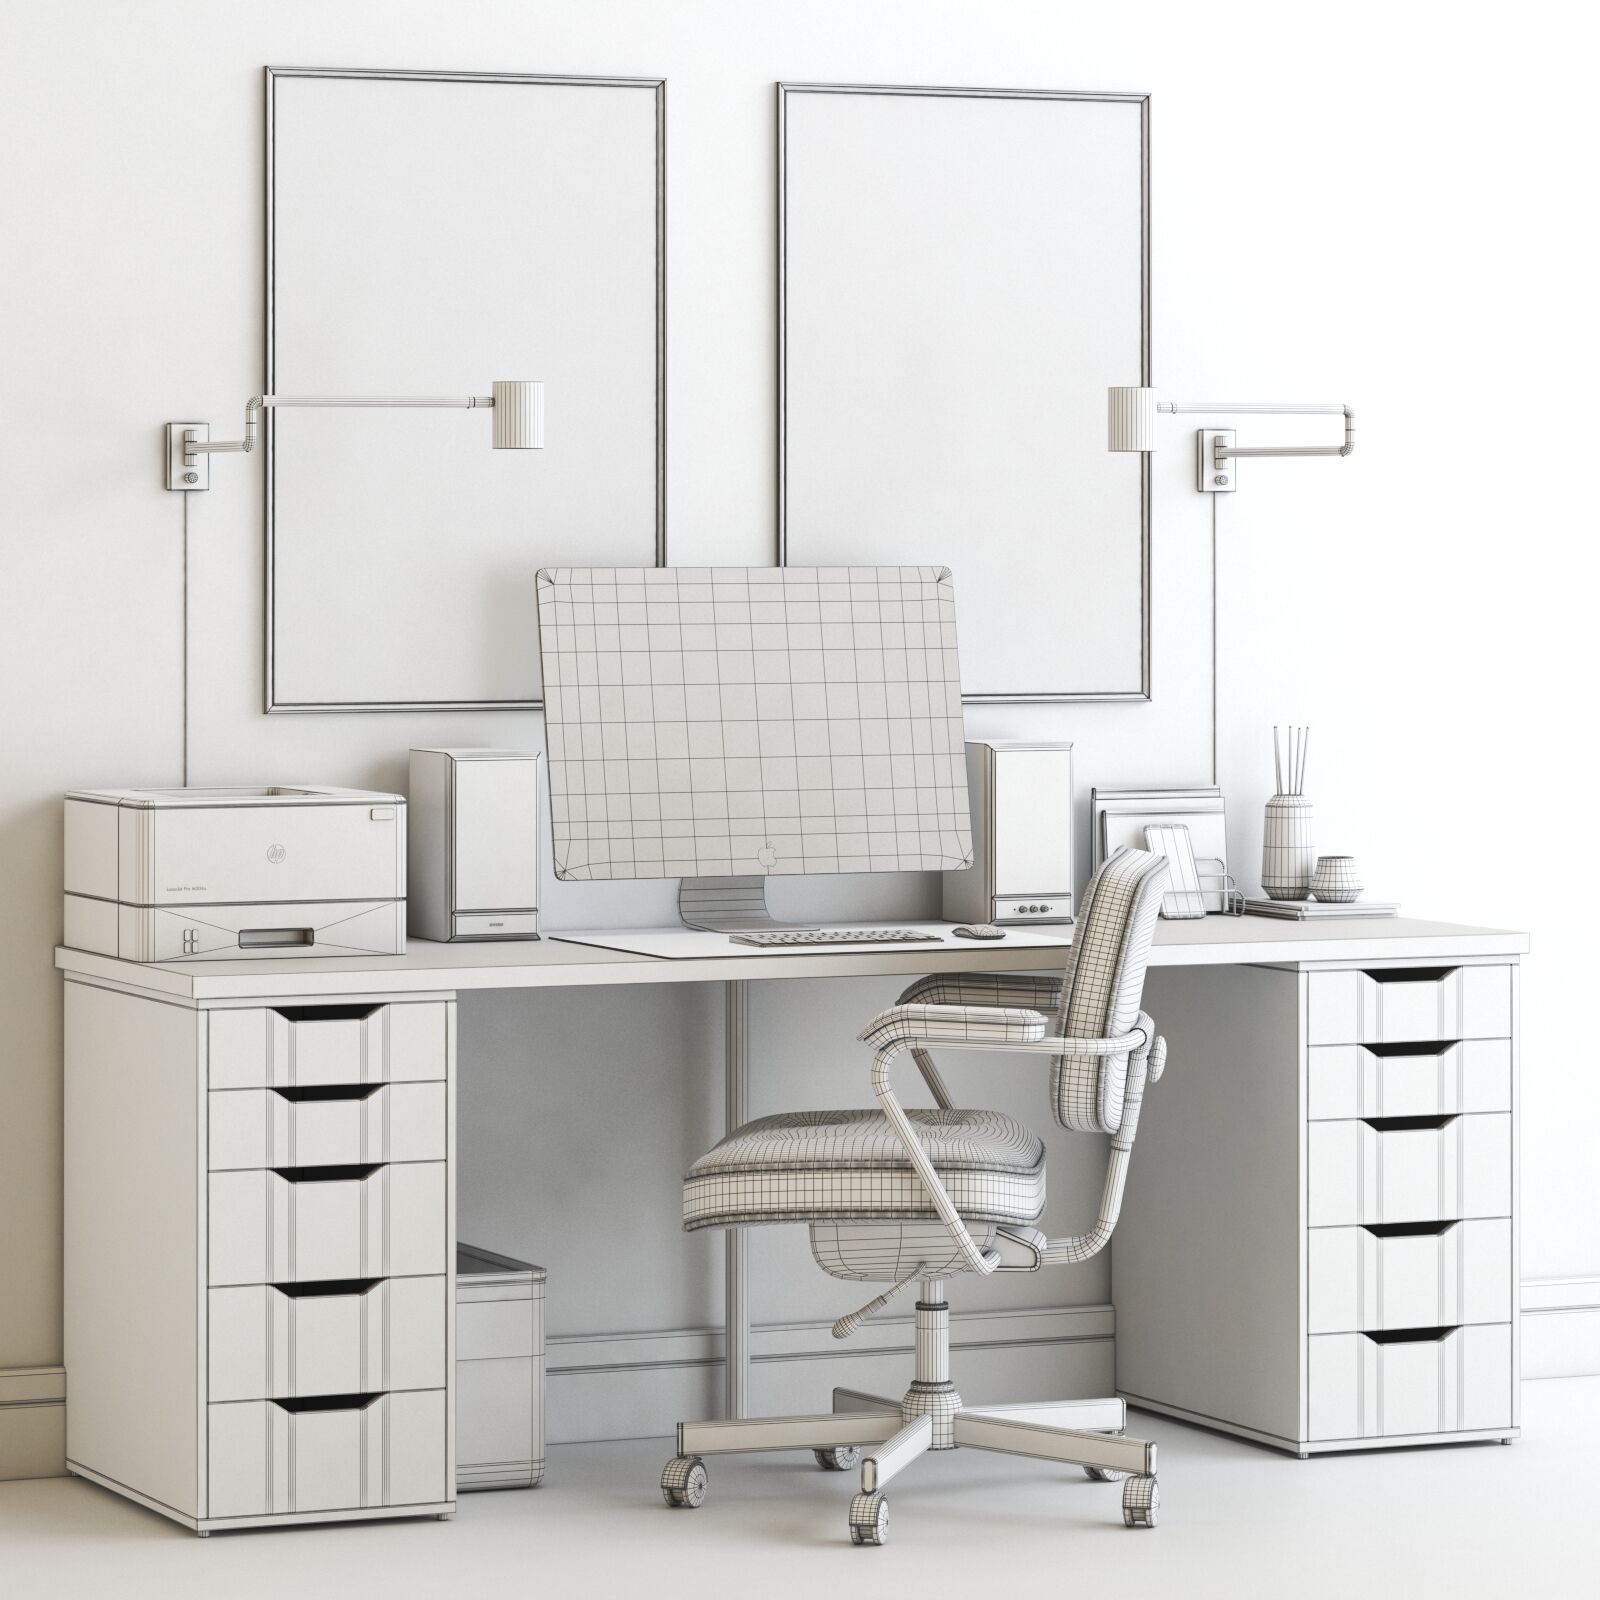 Image of: Ikea Workplace With Alex Table And Alefjall Chair 3d Model Download 3d Model Ikea Workplace With Alex Table And Alefjall Chair 19009 3dbaza Com